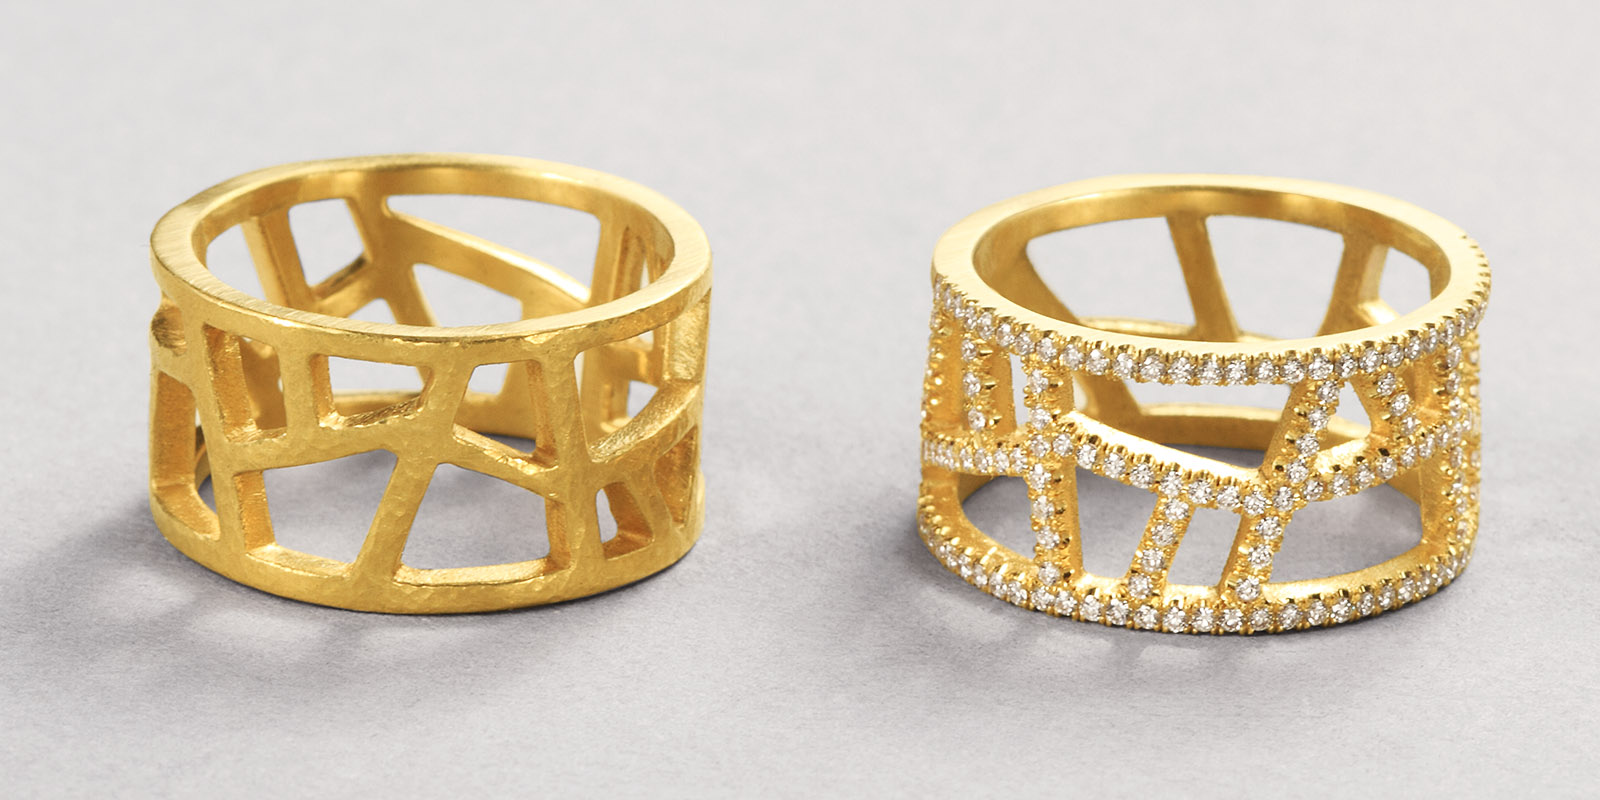 Rachel bands. 22 karat gold and diamonds.